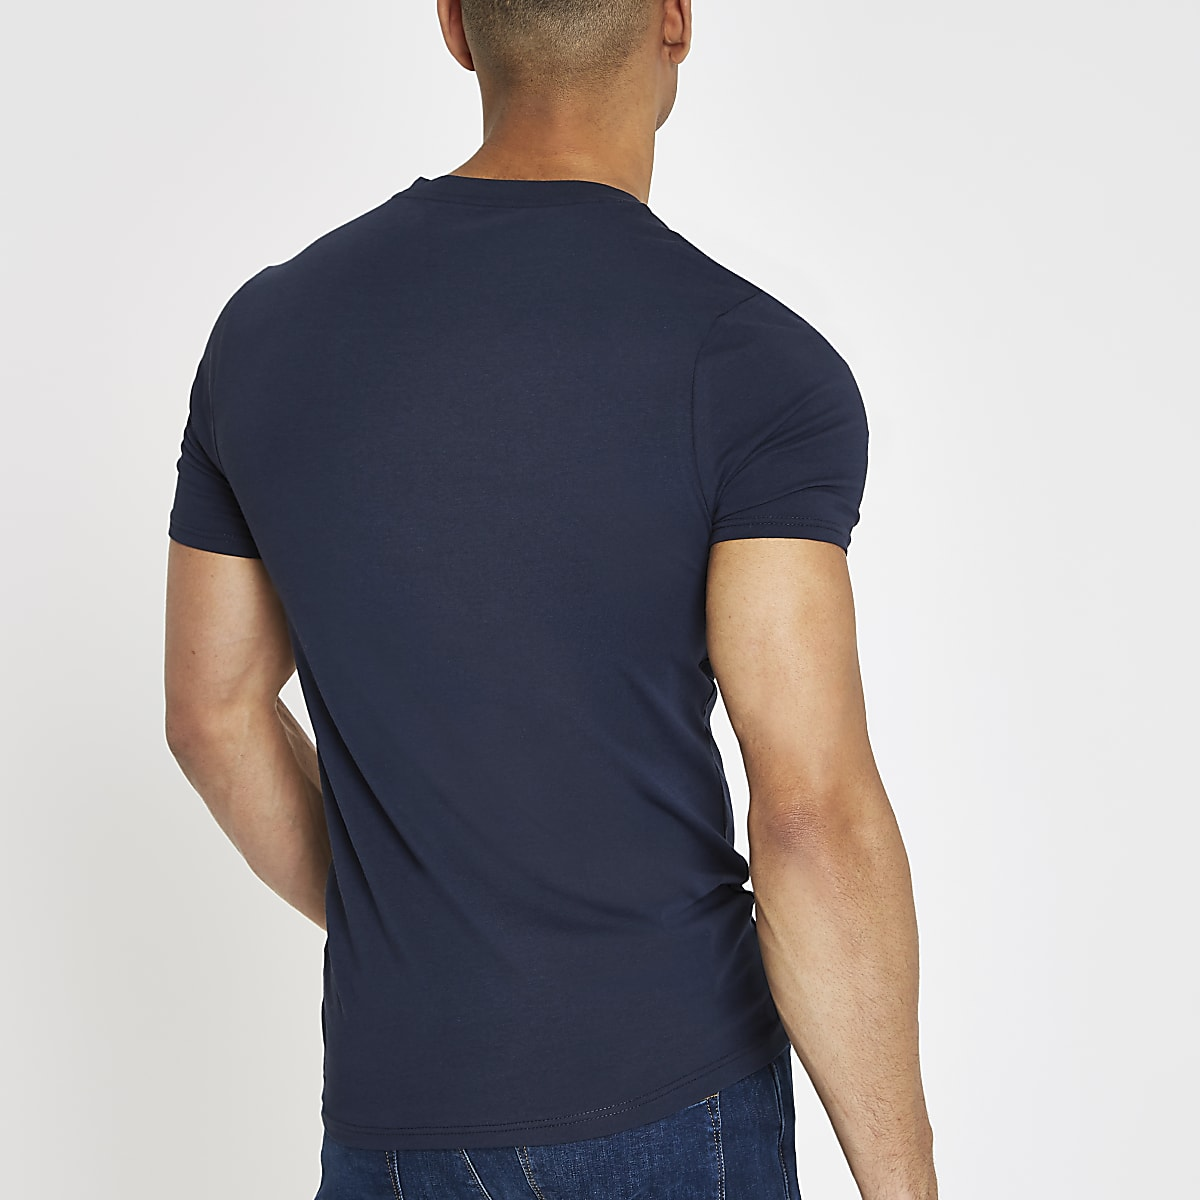 7893908e8ae6 Navy muscle fit V neck T-shirt 5 pack - T-shirts - T-Shirts & Vests ...